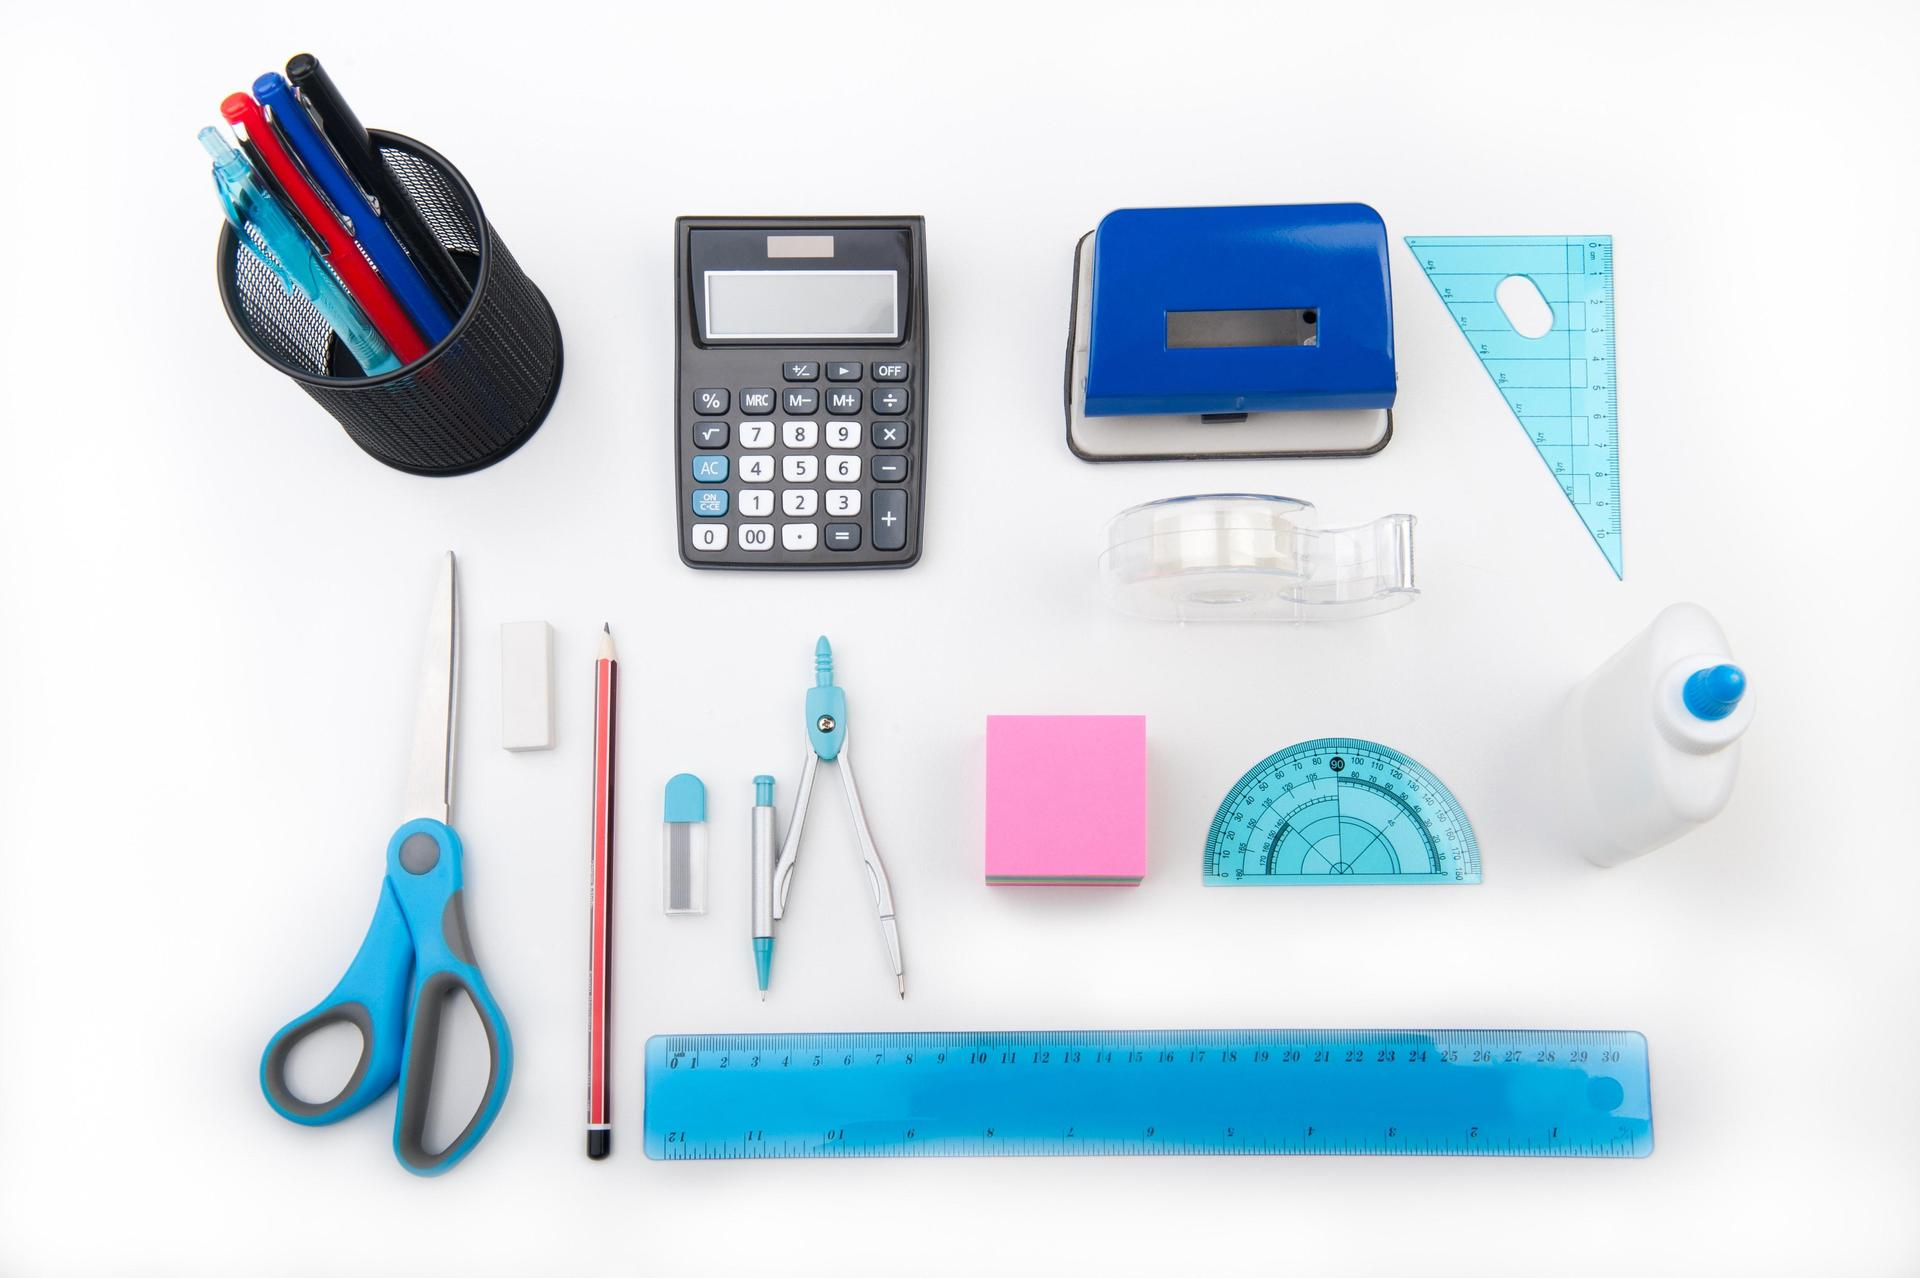 Picture of school supplies including a pencil cup with pencils in it, calculator, scissors, protractor, ruler, eraser